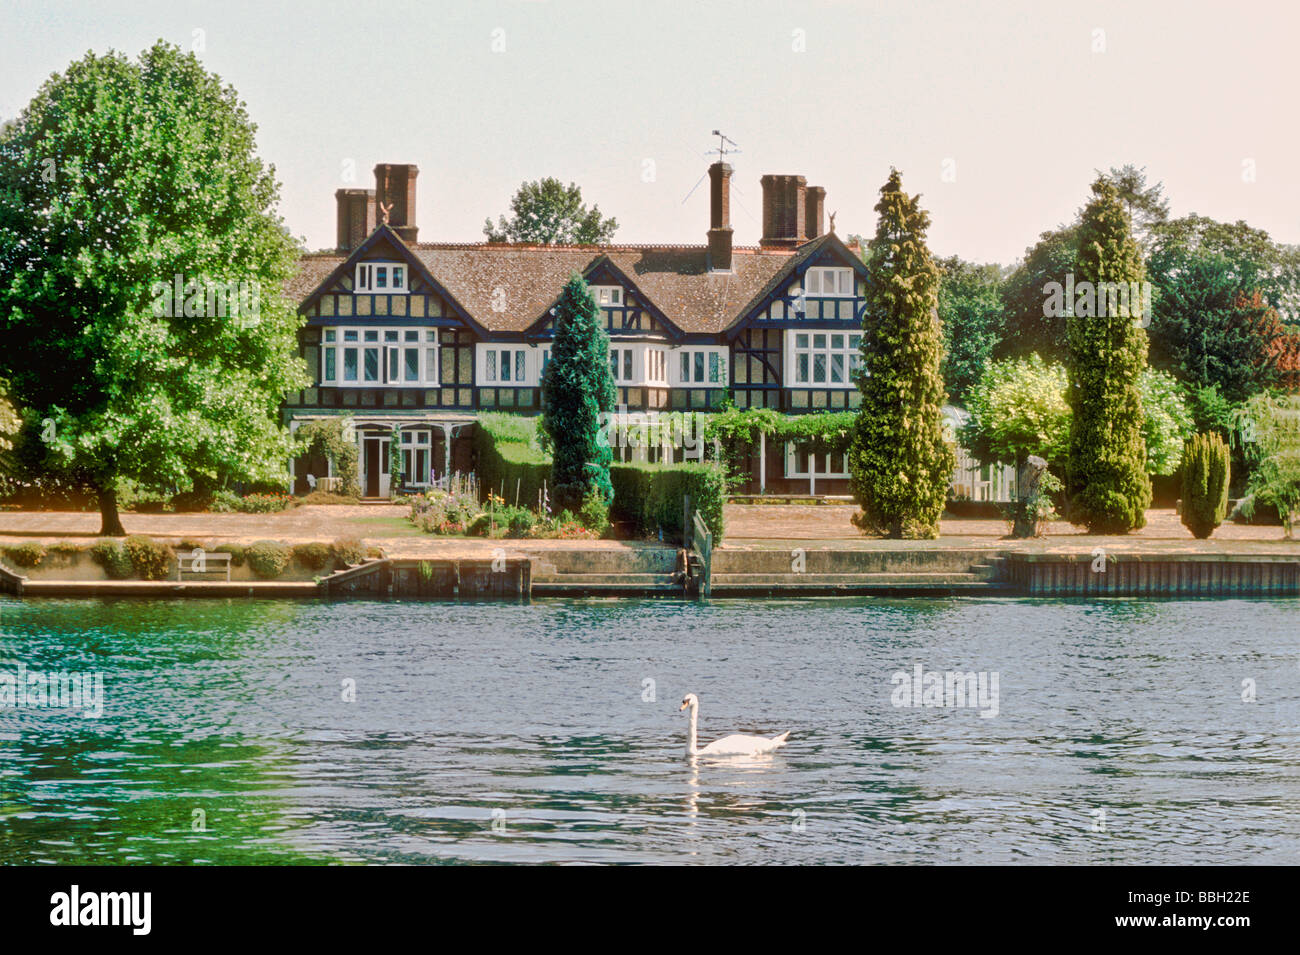 A large house on the River Thames at Remenham in Berkshire England UK Stock Photo